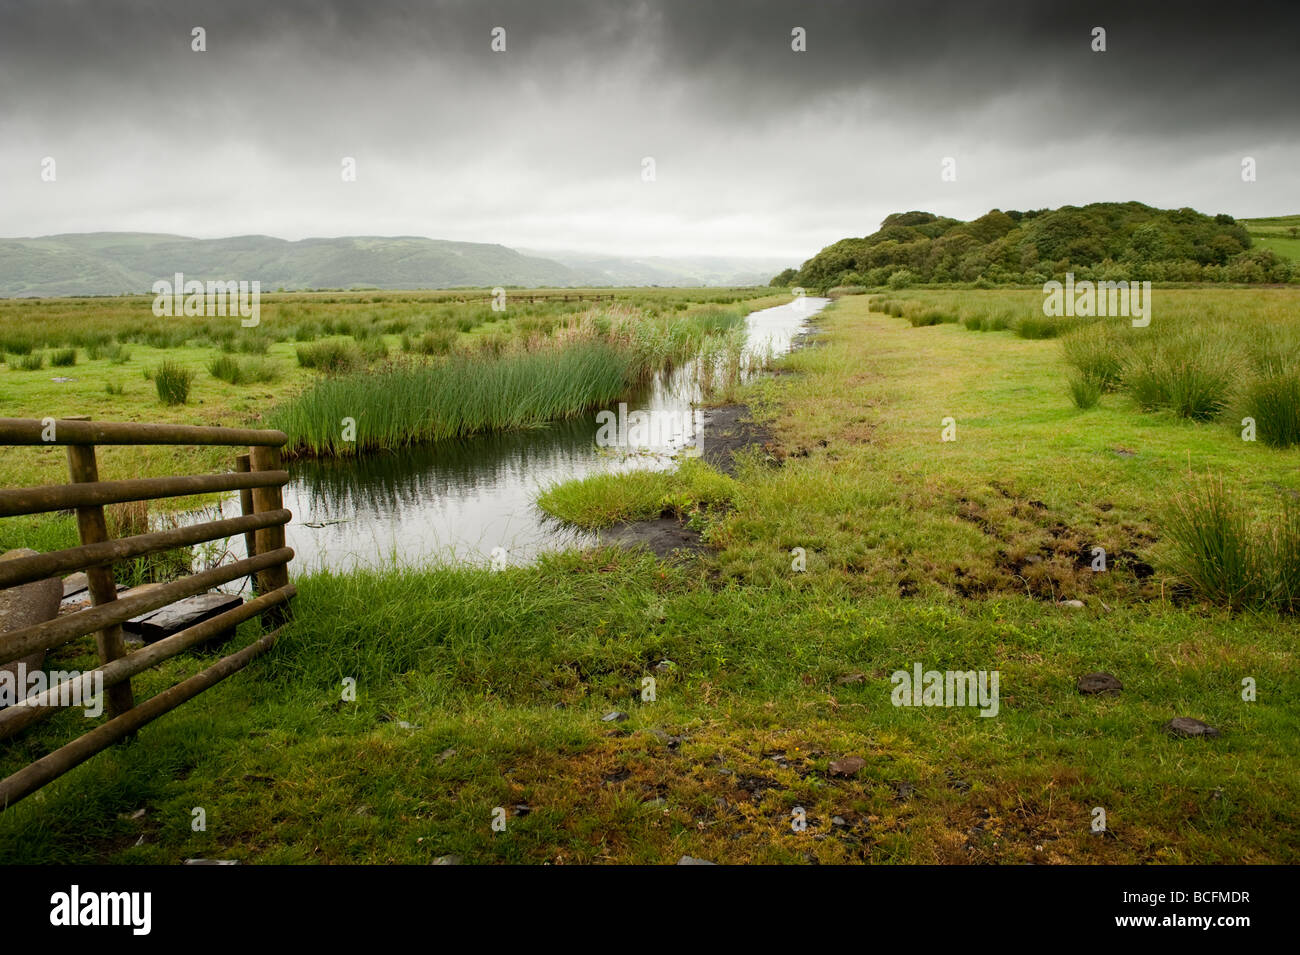 Cors Fochno managed wetlands at the Ynyshir RSPB nature reserve in the Dyfi estuary biosphere Ceredigion Wales UK - Stock Image